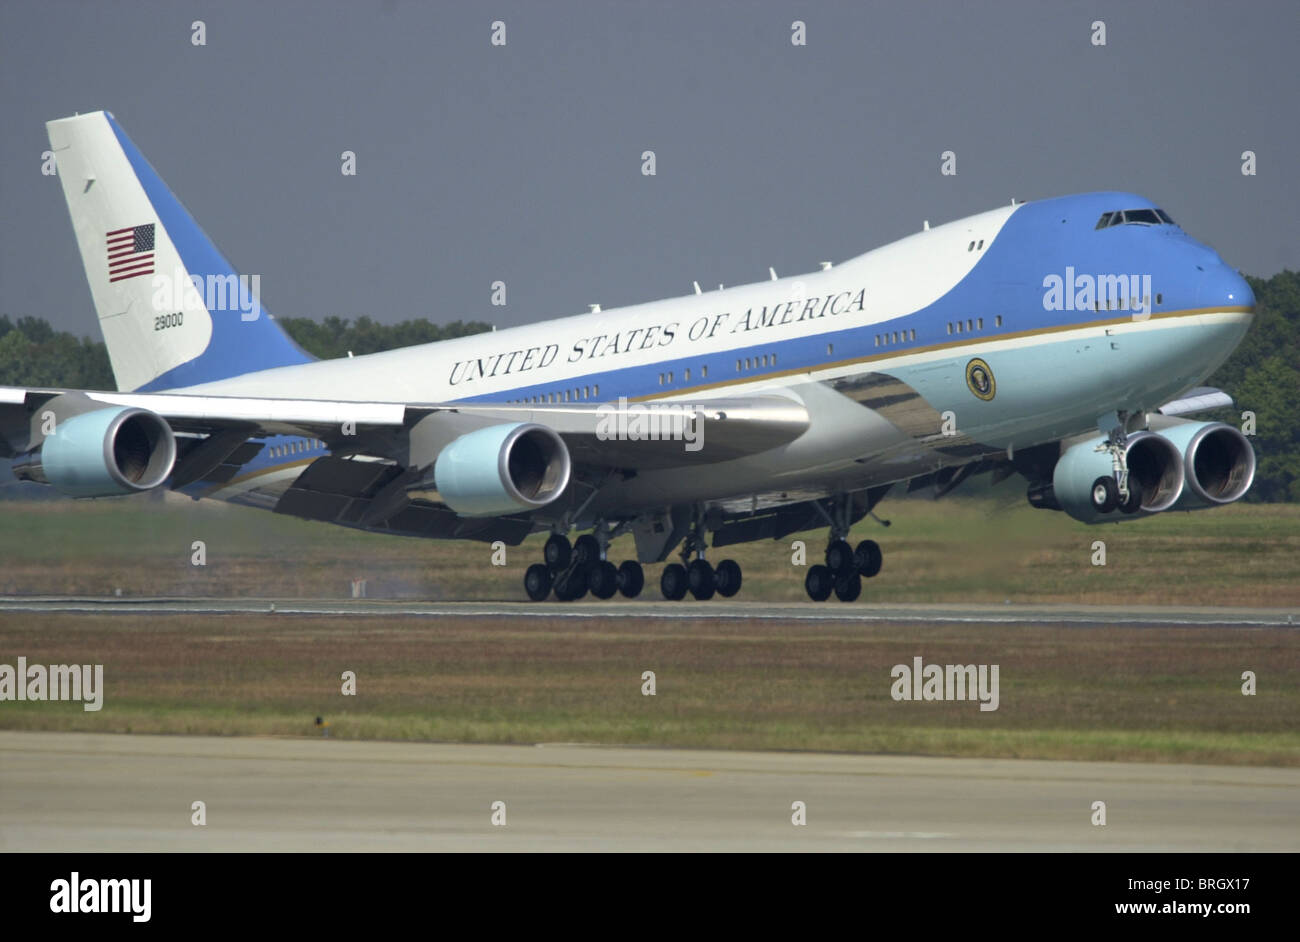 George W. Bush arrives via airforce one. - Stock Image